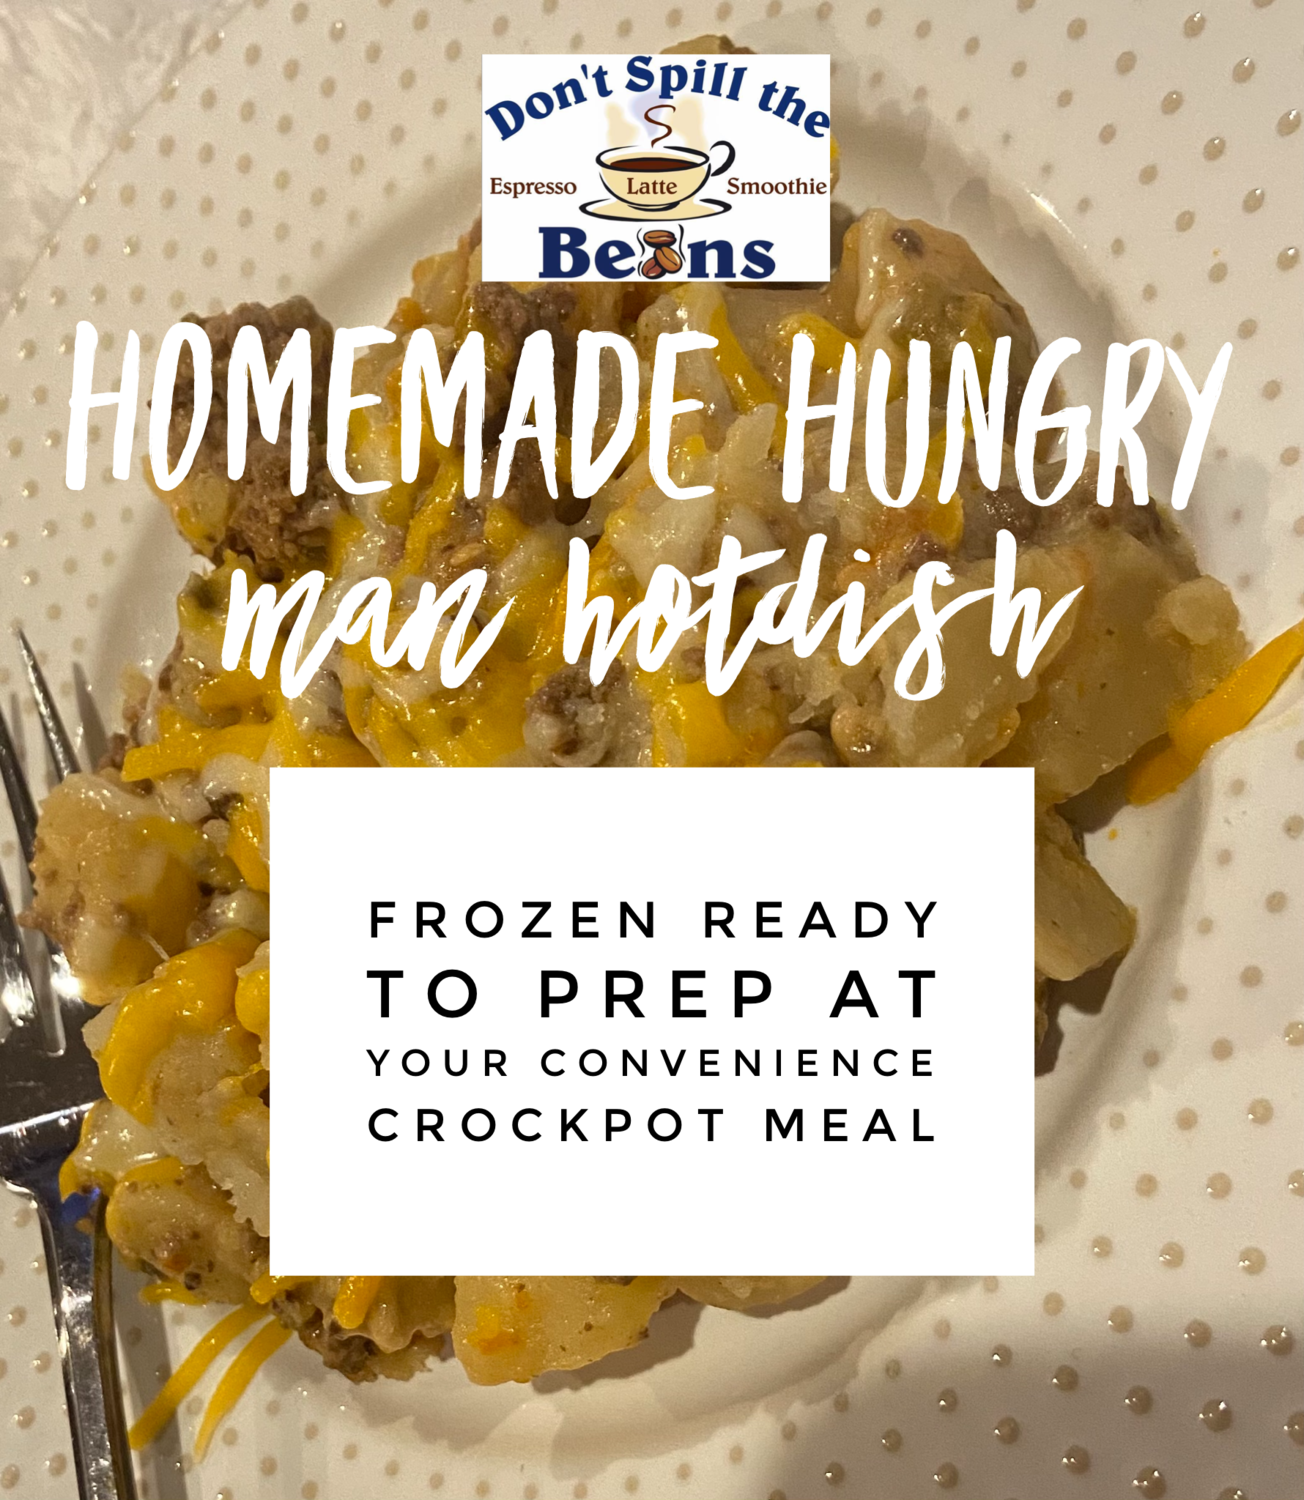 Hungry Man Crockpot Frozen Meal Prep Hotdish (Ready for pickup anytime)